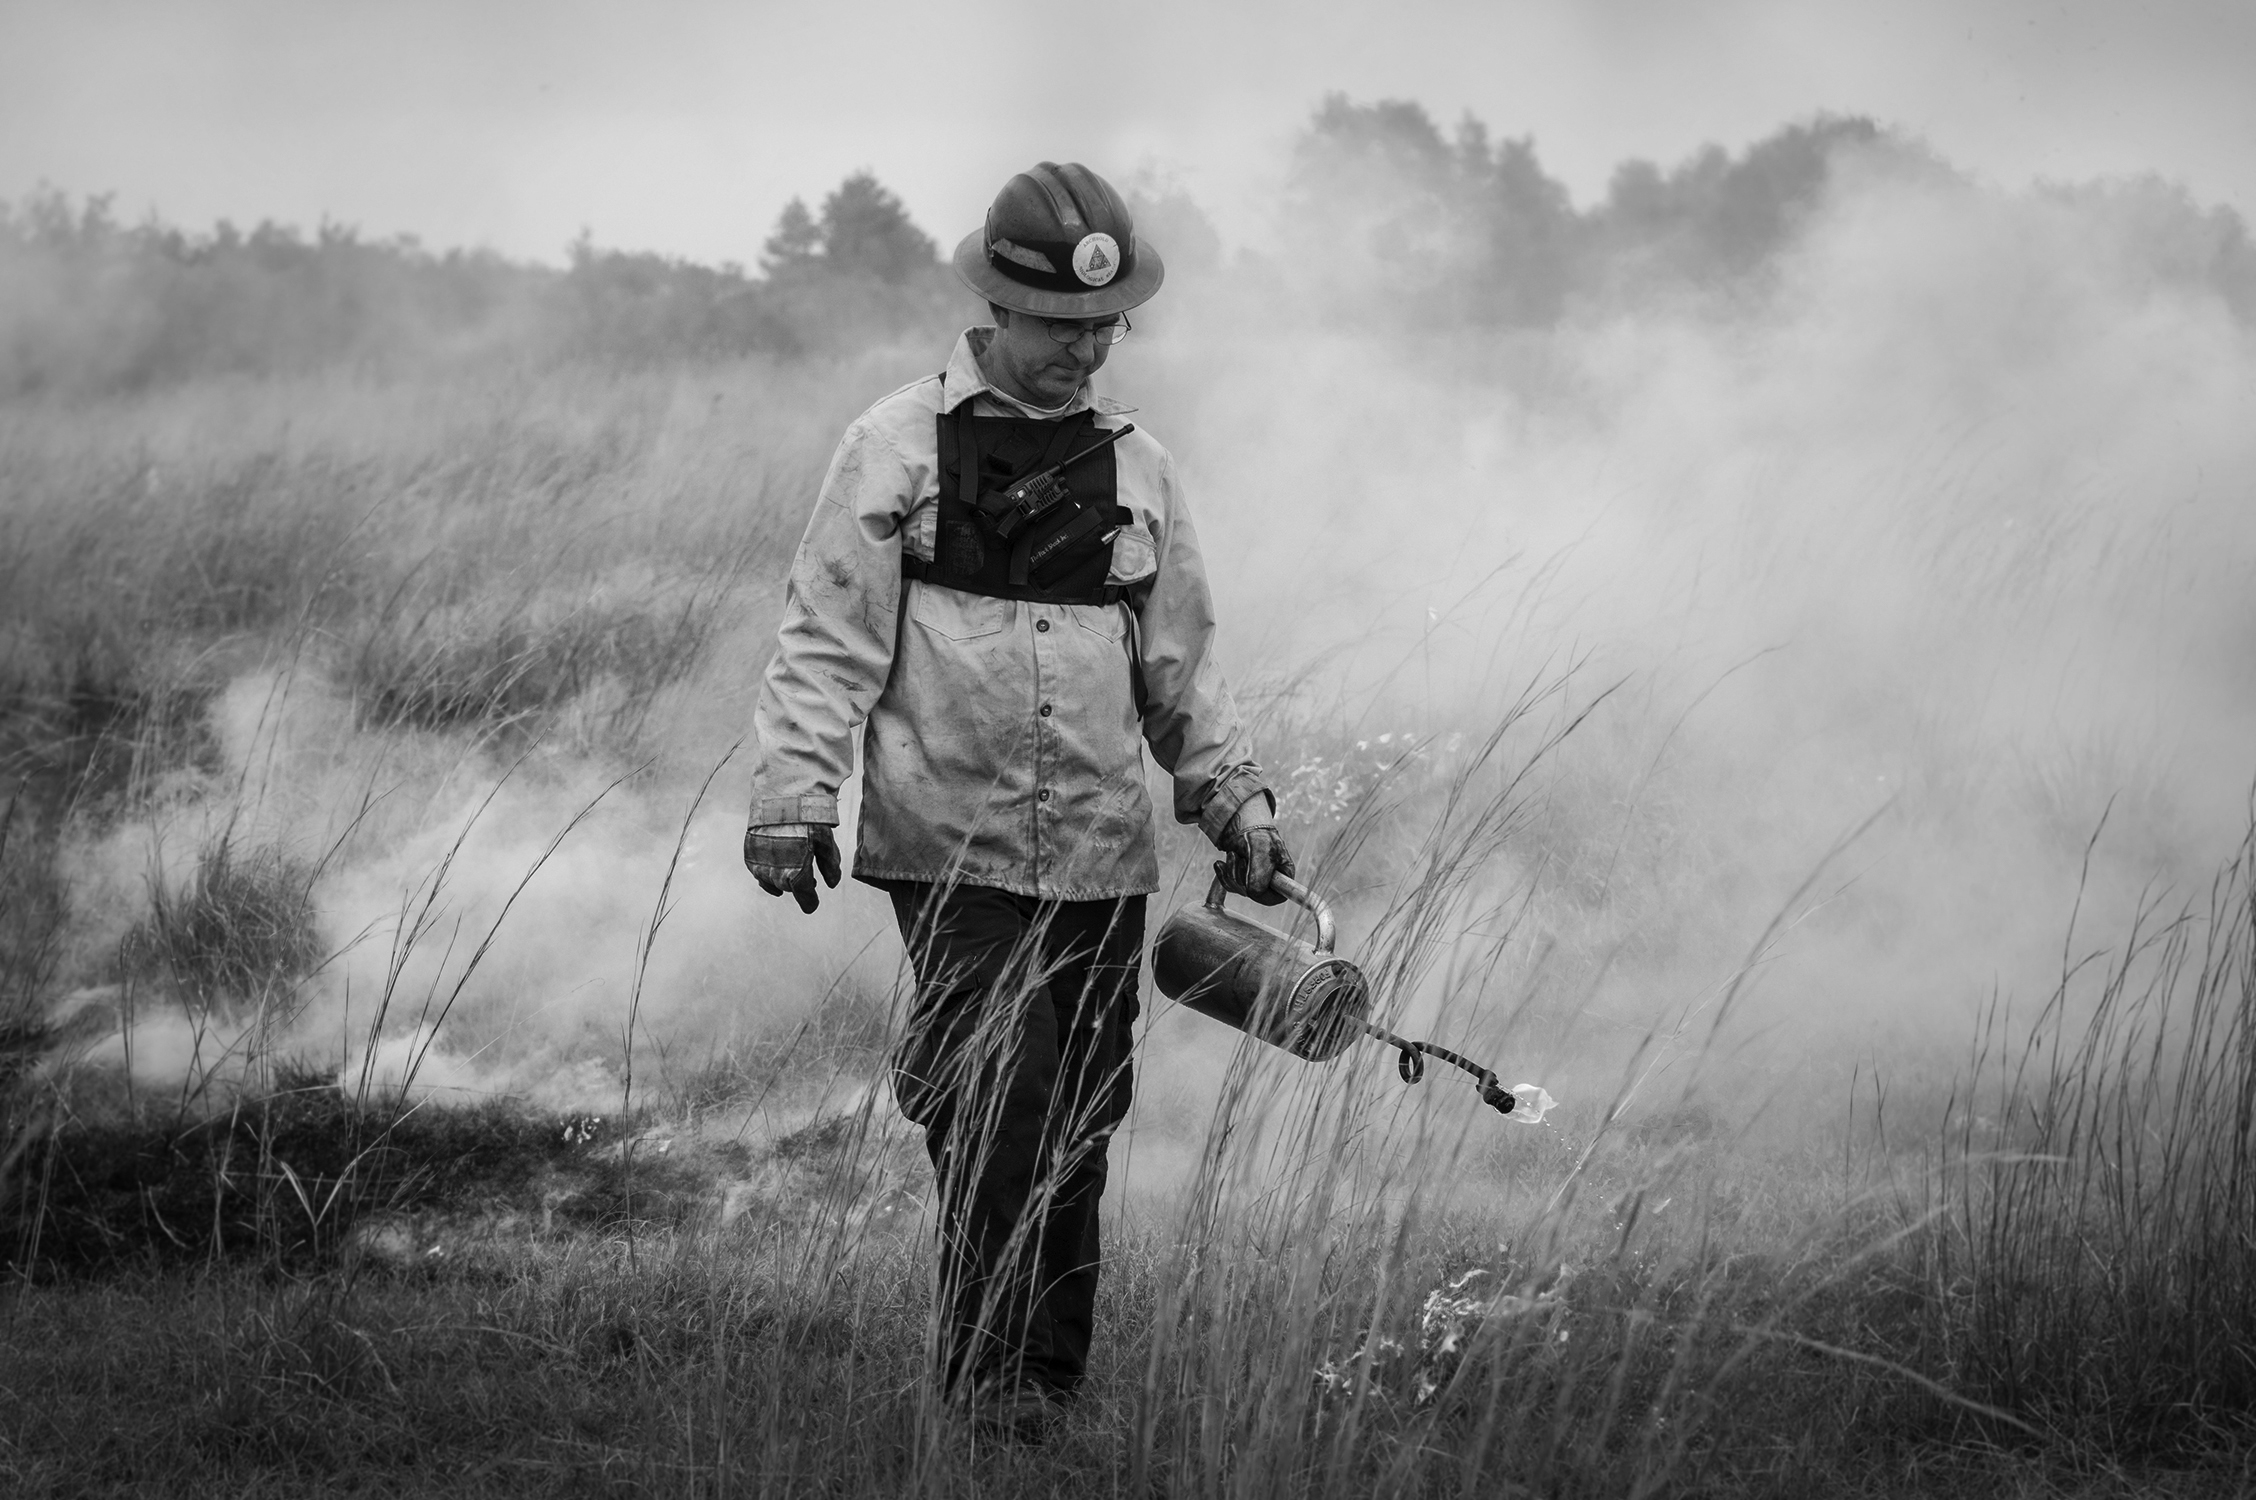 Land Manager, Kevin Main uses a driptorch during a prescribed fire as part of a habitat restoration project at Archbold Reserve.